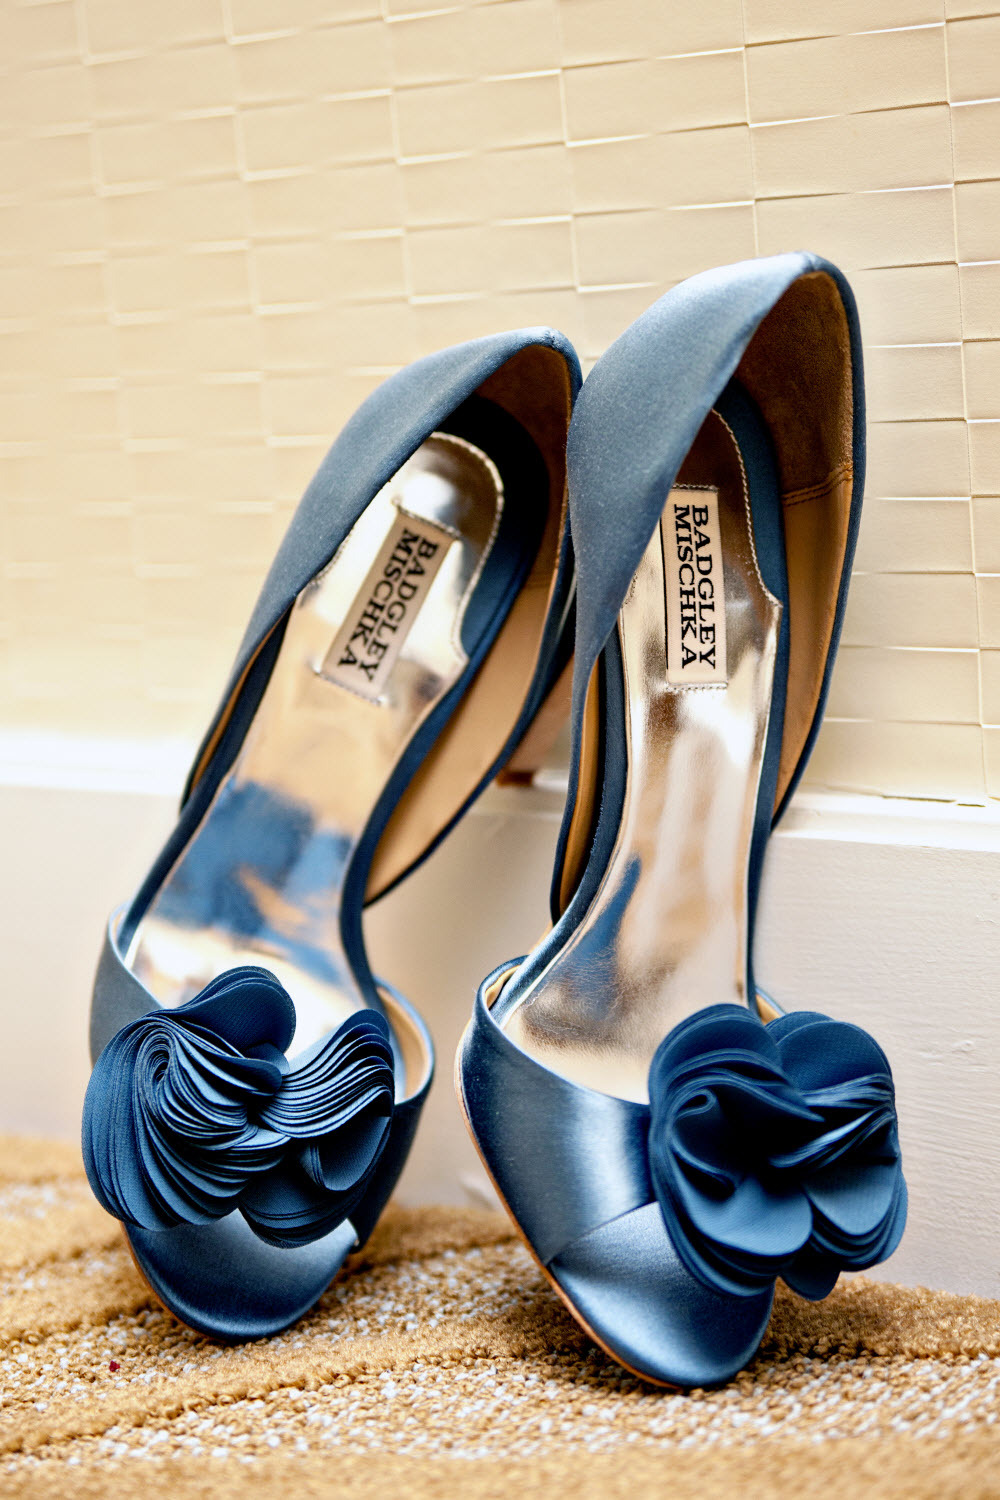 Something-blue-chic-wedding-shoes-badgley-mischka-peep-toe-bridal-heels.full